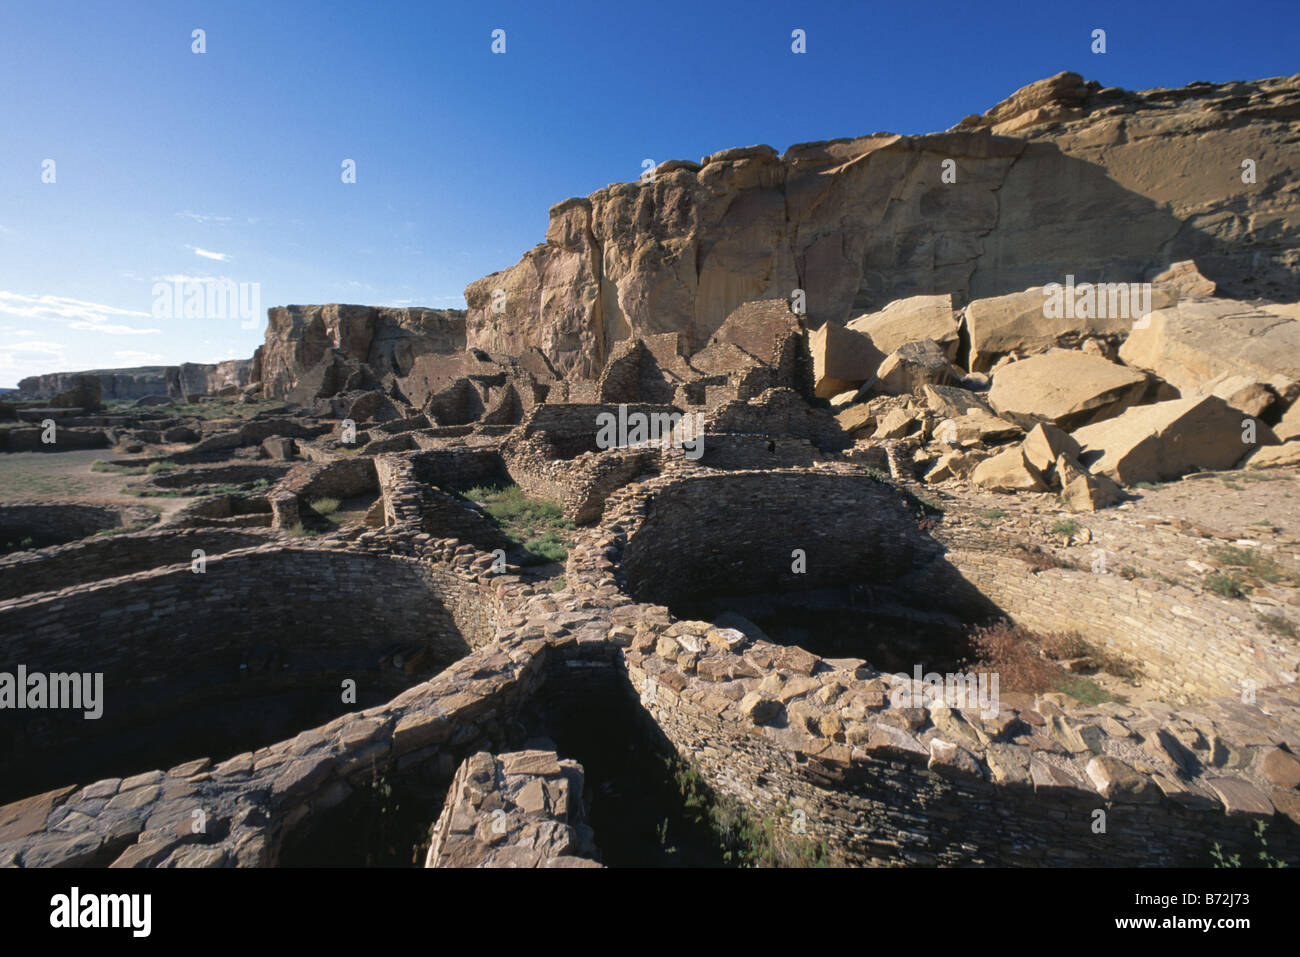 Kivas in Pueblo Bonito anasazi ruin in Chaco New Mexico USA - Stock Image